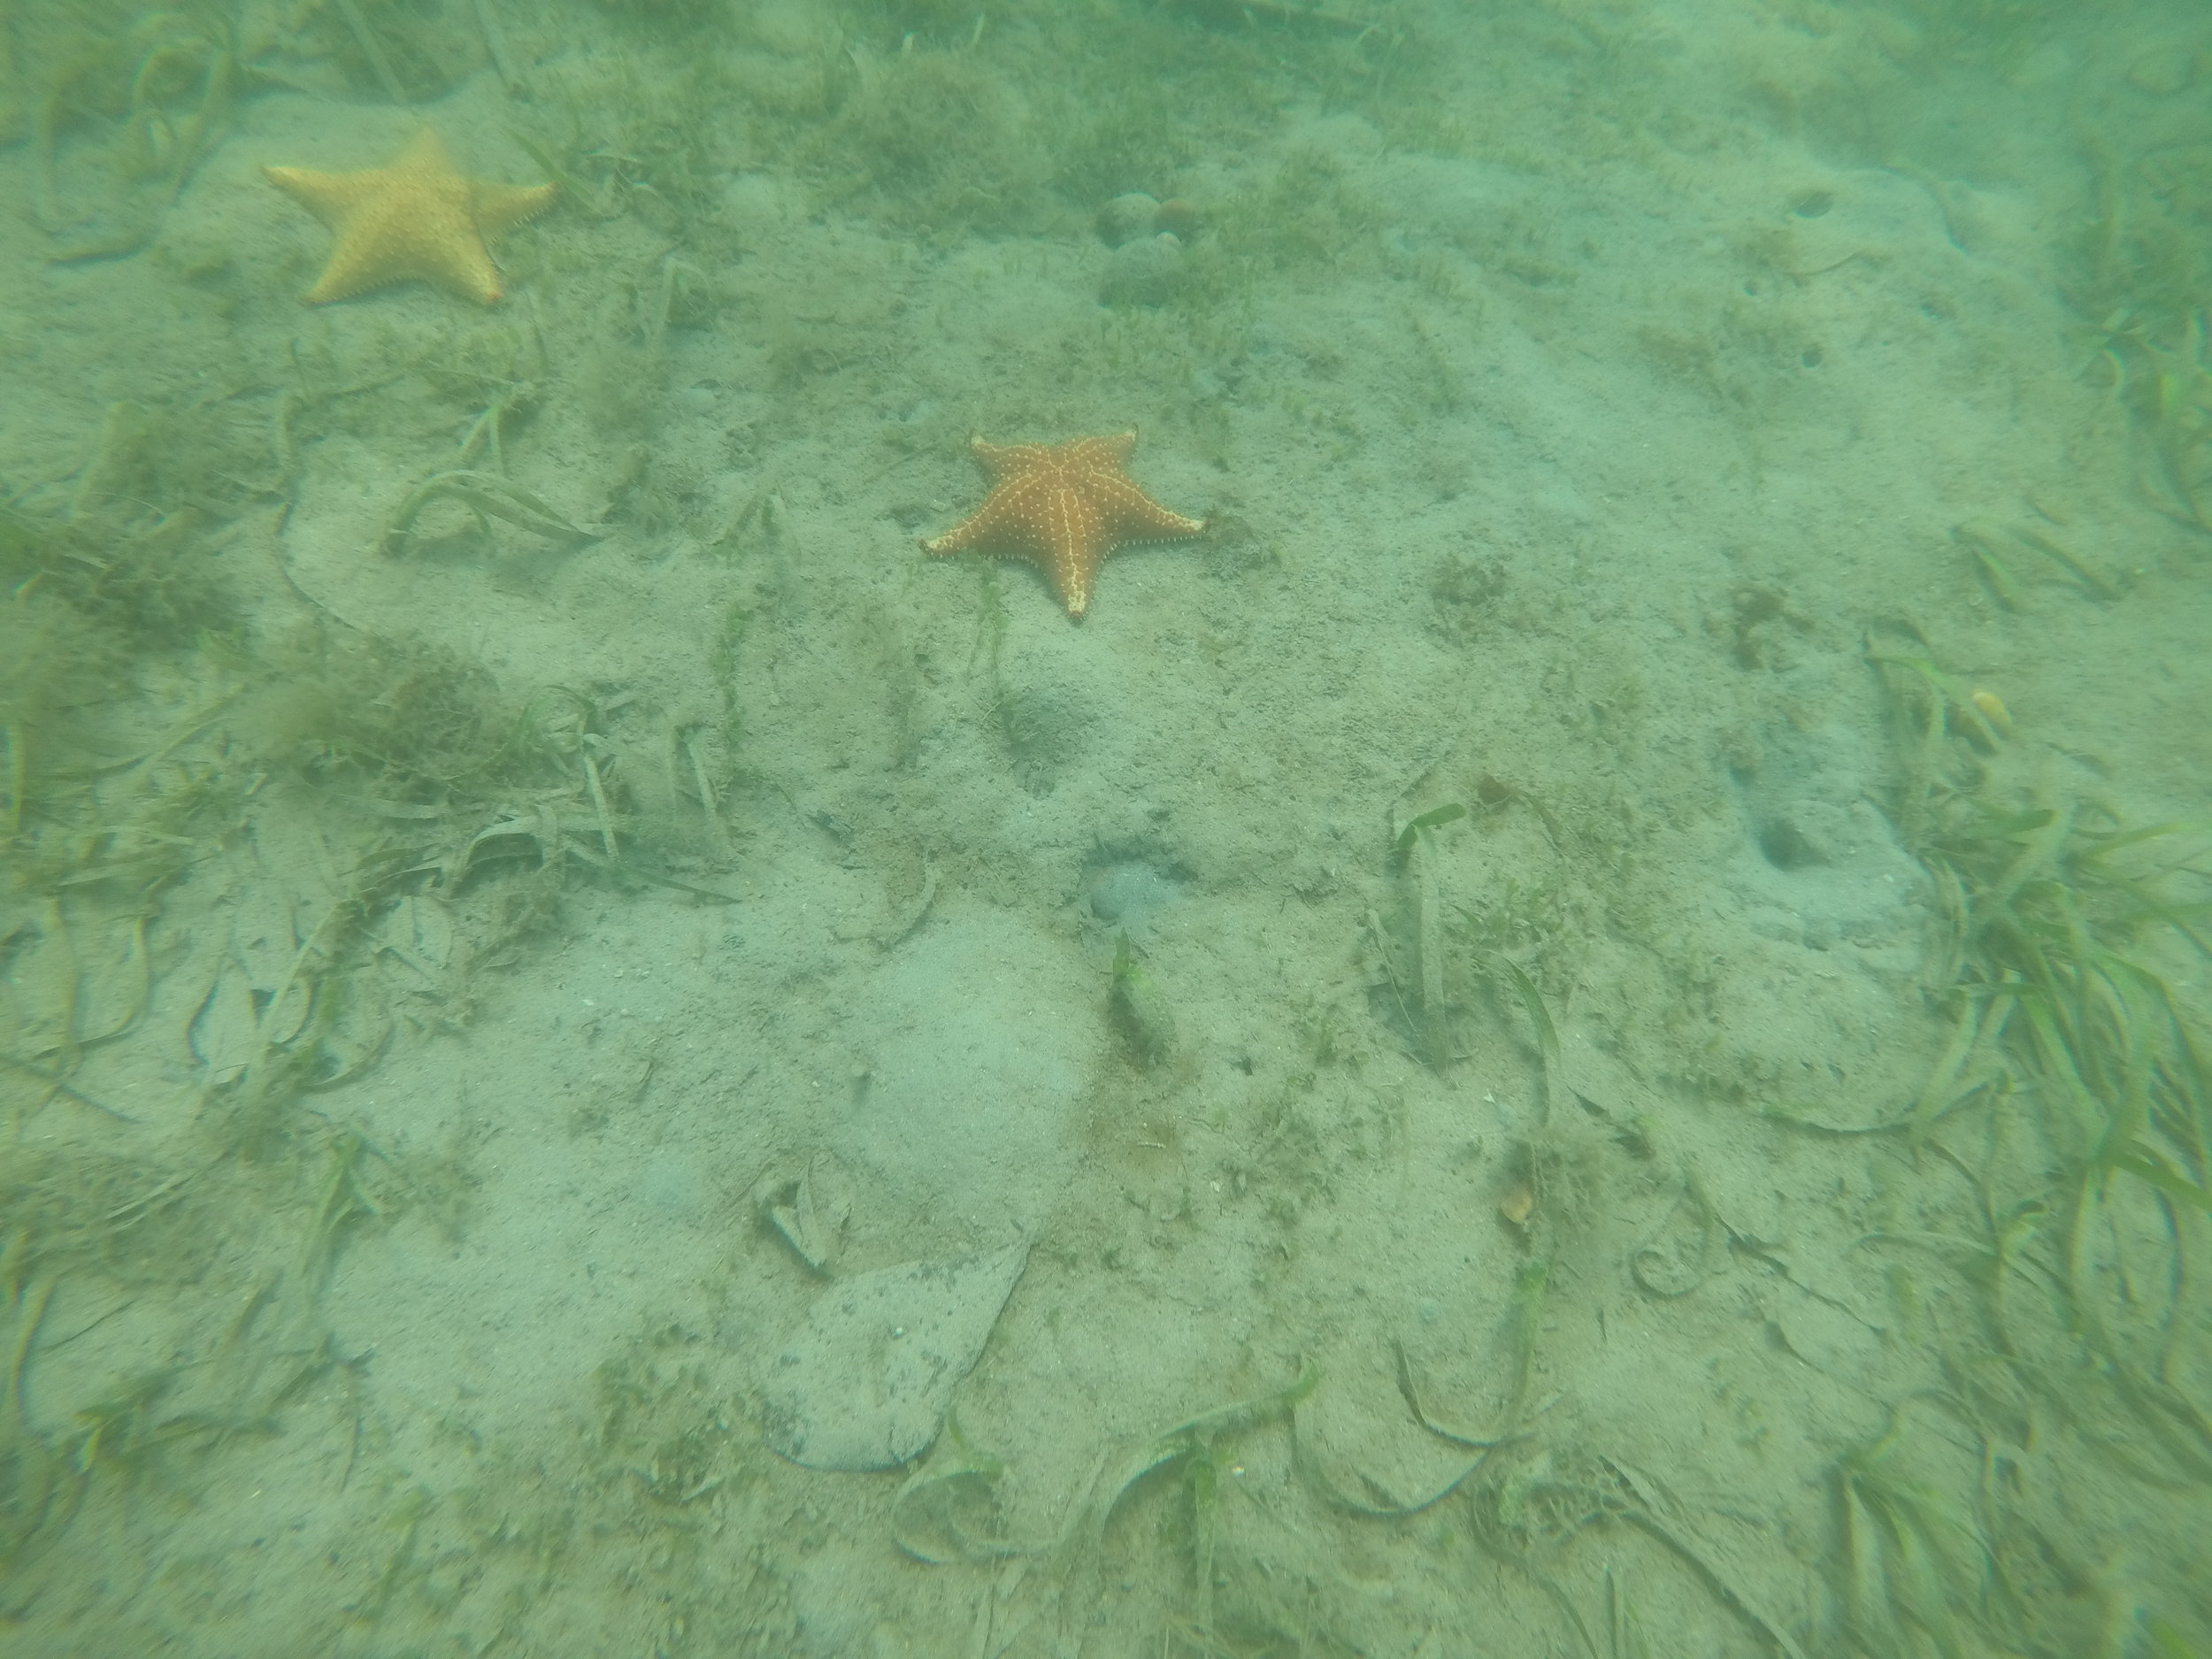 Seastars found in seagrass beds